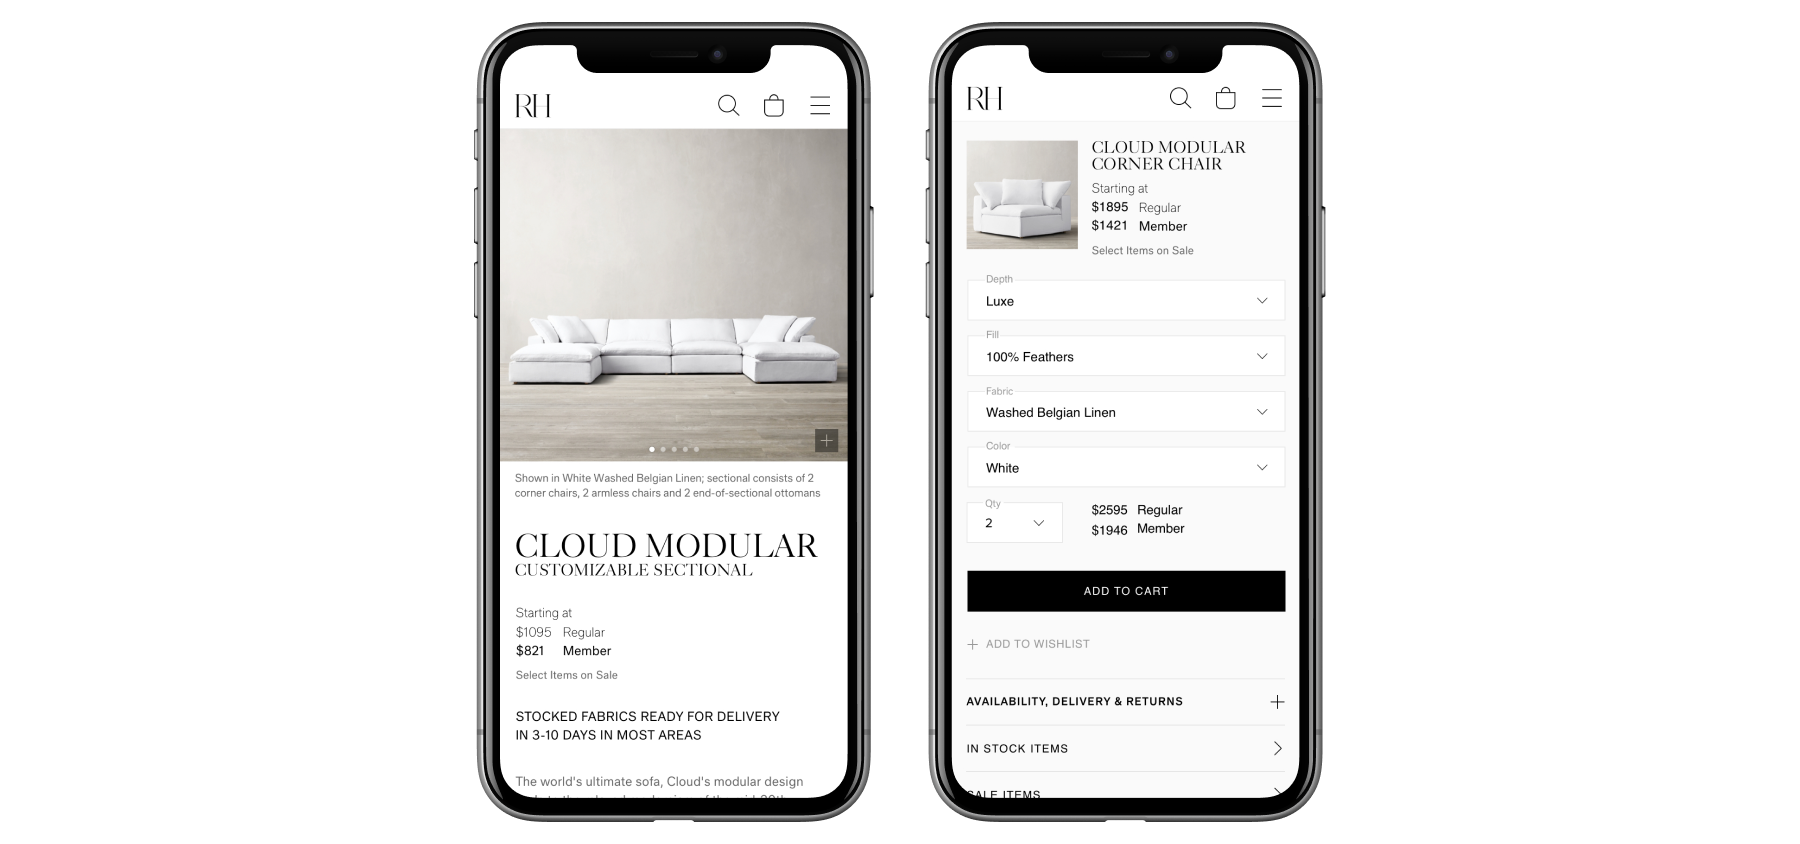 Restoration Hardware mobile